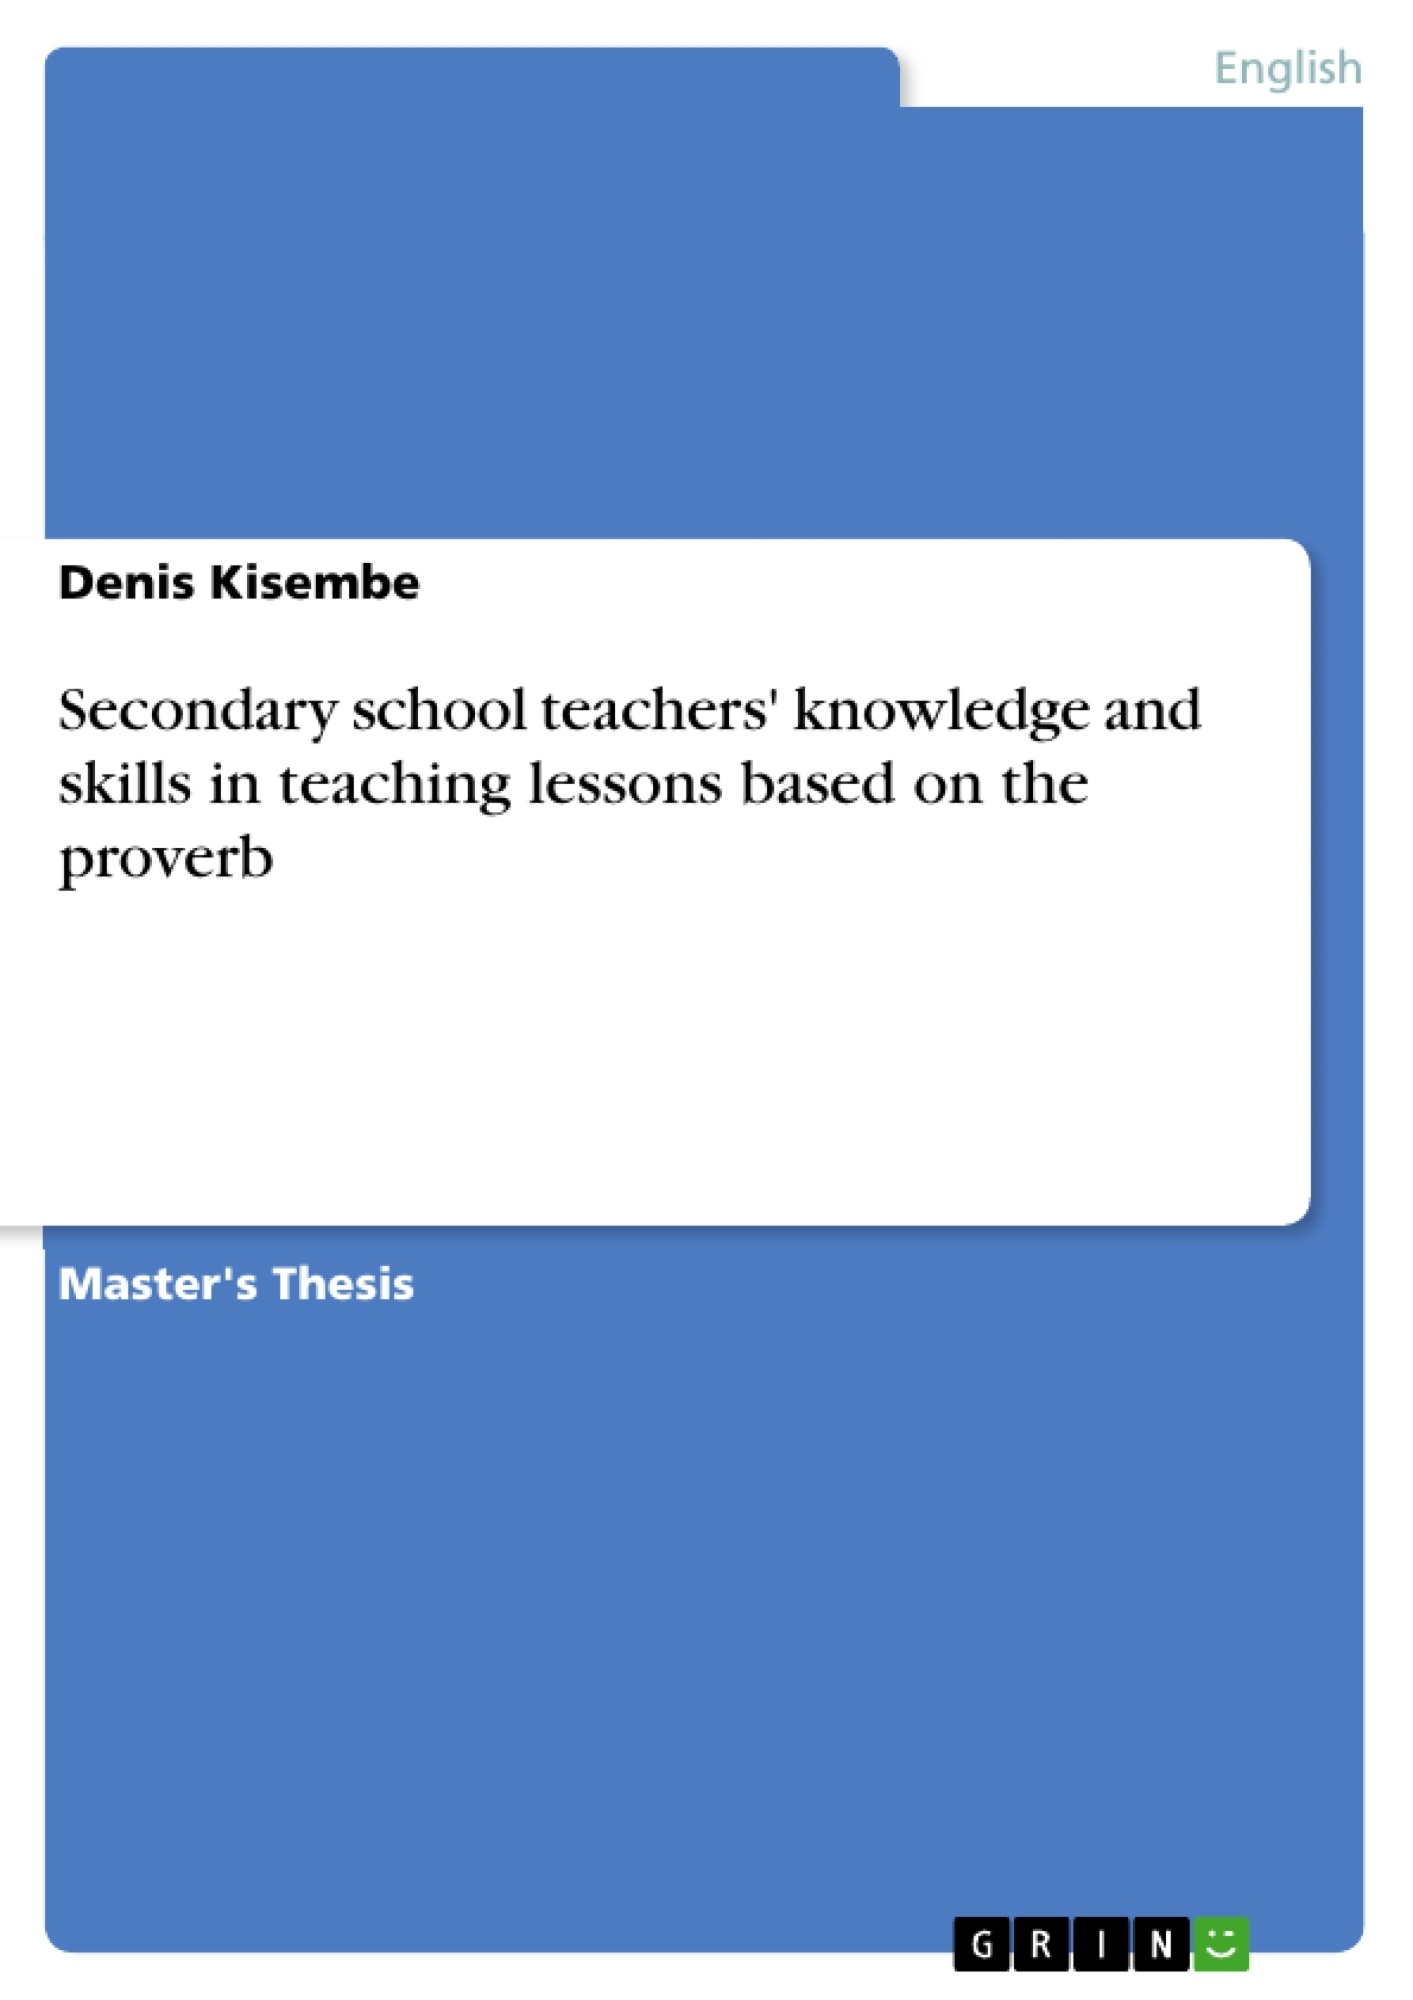 Title: Secondary school teachers' knowledge and skills in teaching lessons based on the proverb